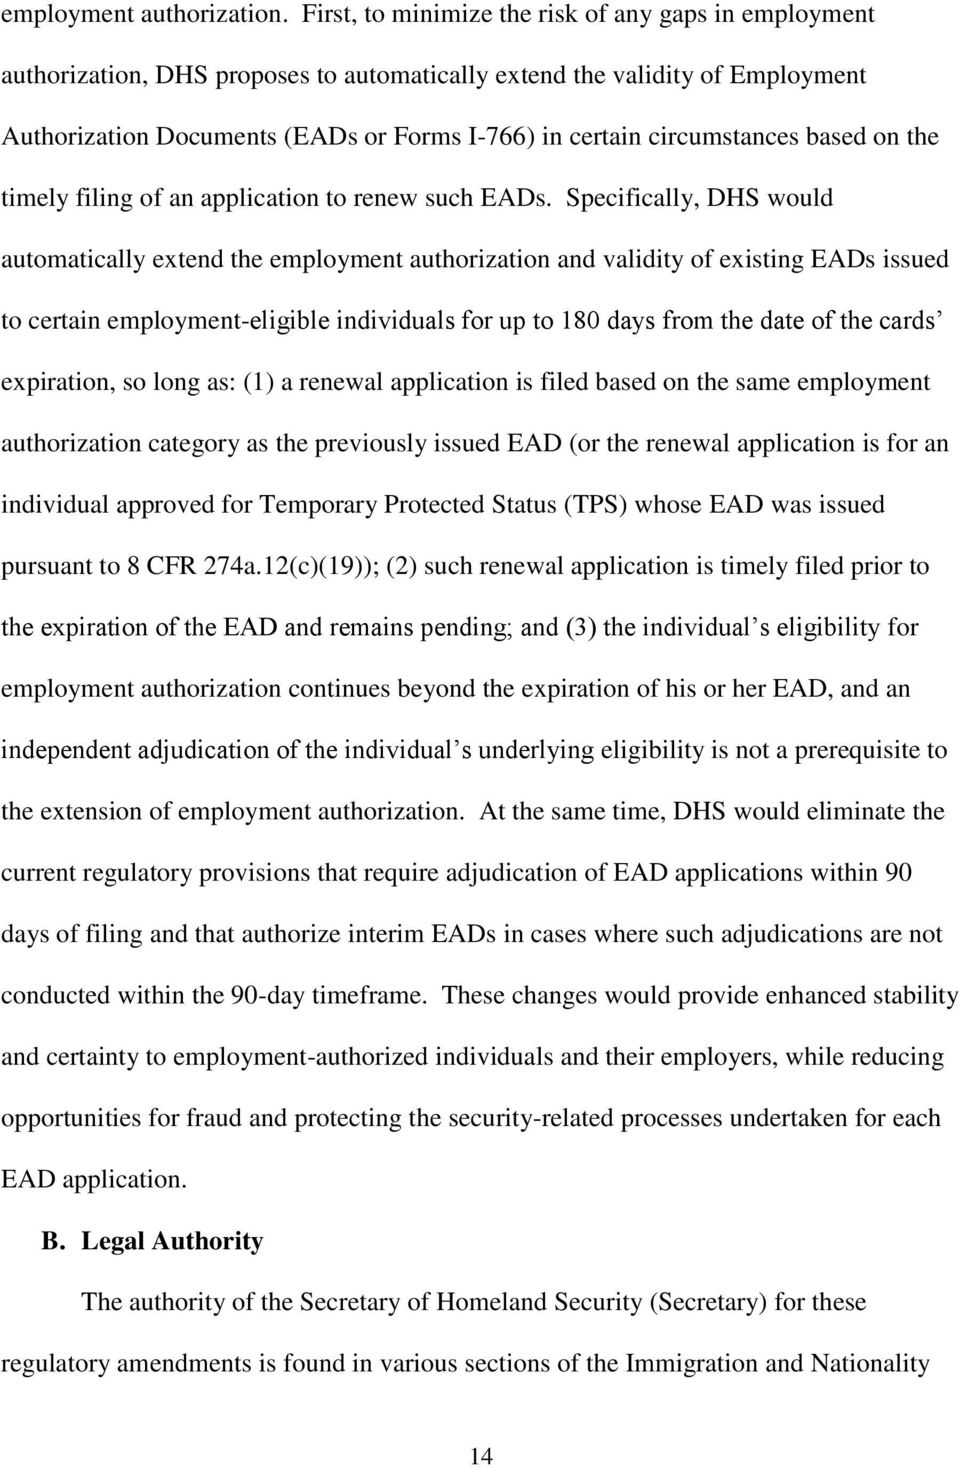 circumstances based on the timely filing of an application to renew such EADs.